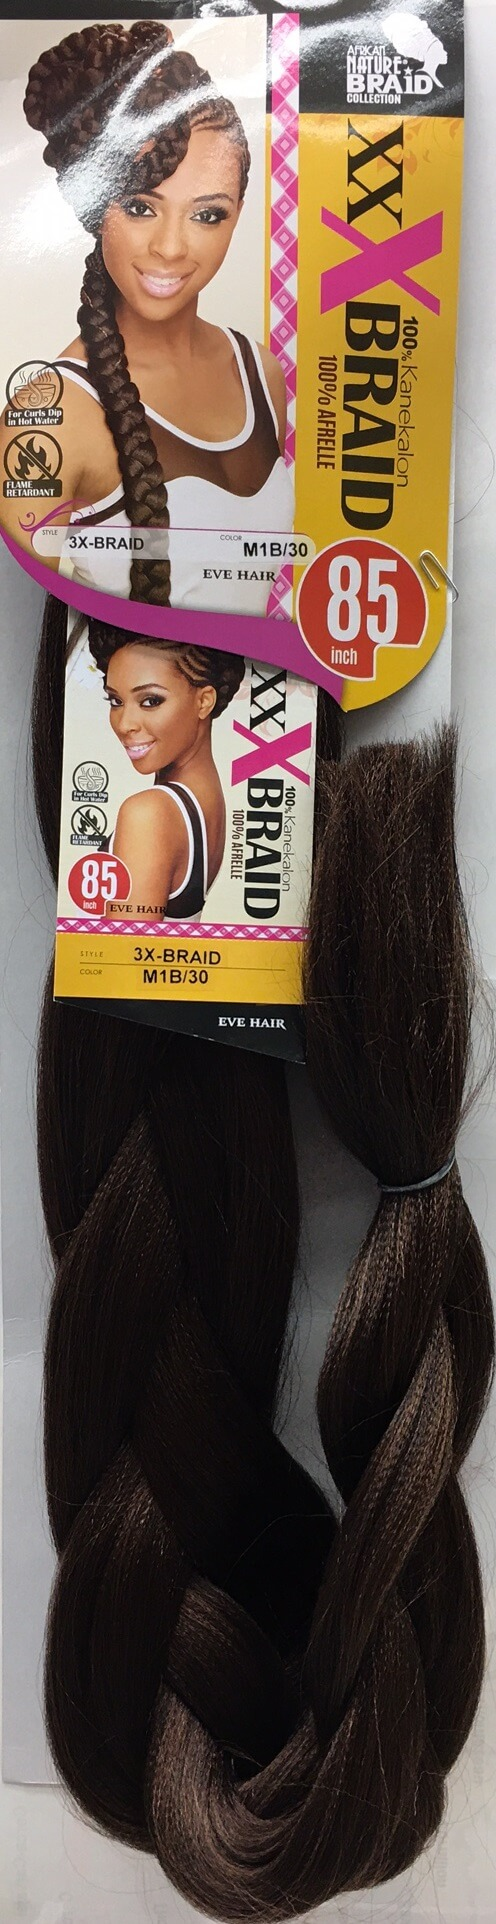 AFRICAN NATURE BRAID COLLECTION - PAQ. DE 1 EVE HAIR 3X-BRAID (XXX), 100% KANEKALON, 100% AFRELLE, 85'' INCHES, COLOR M1B/30